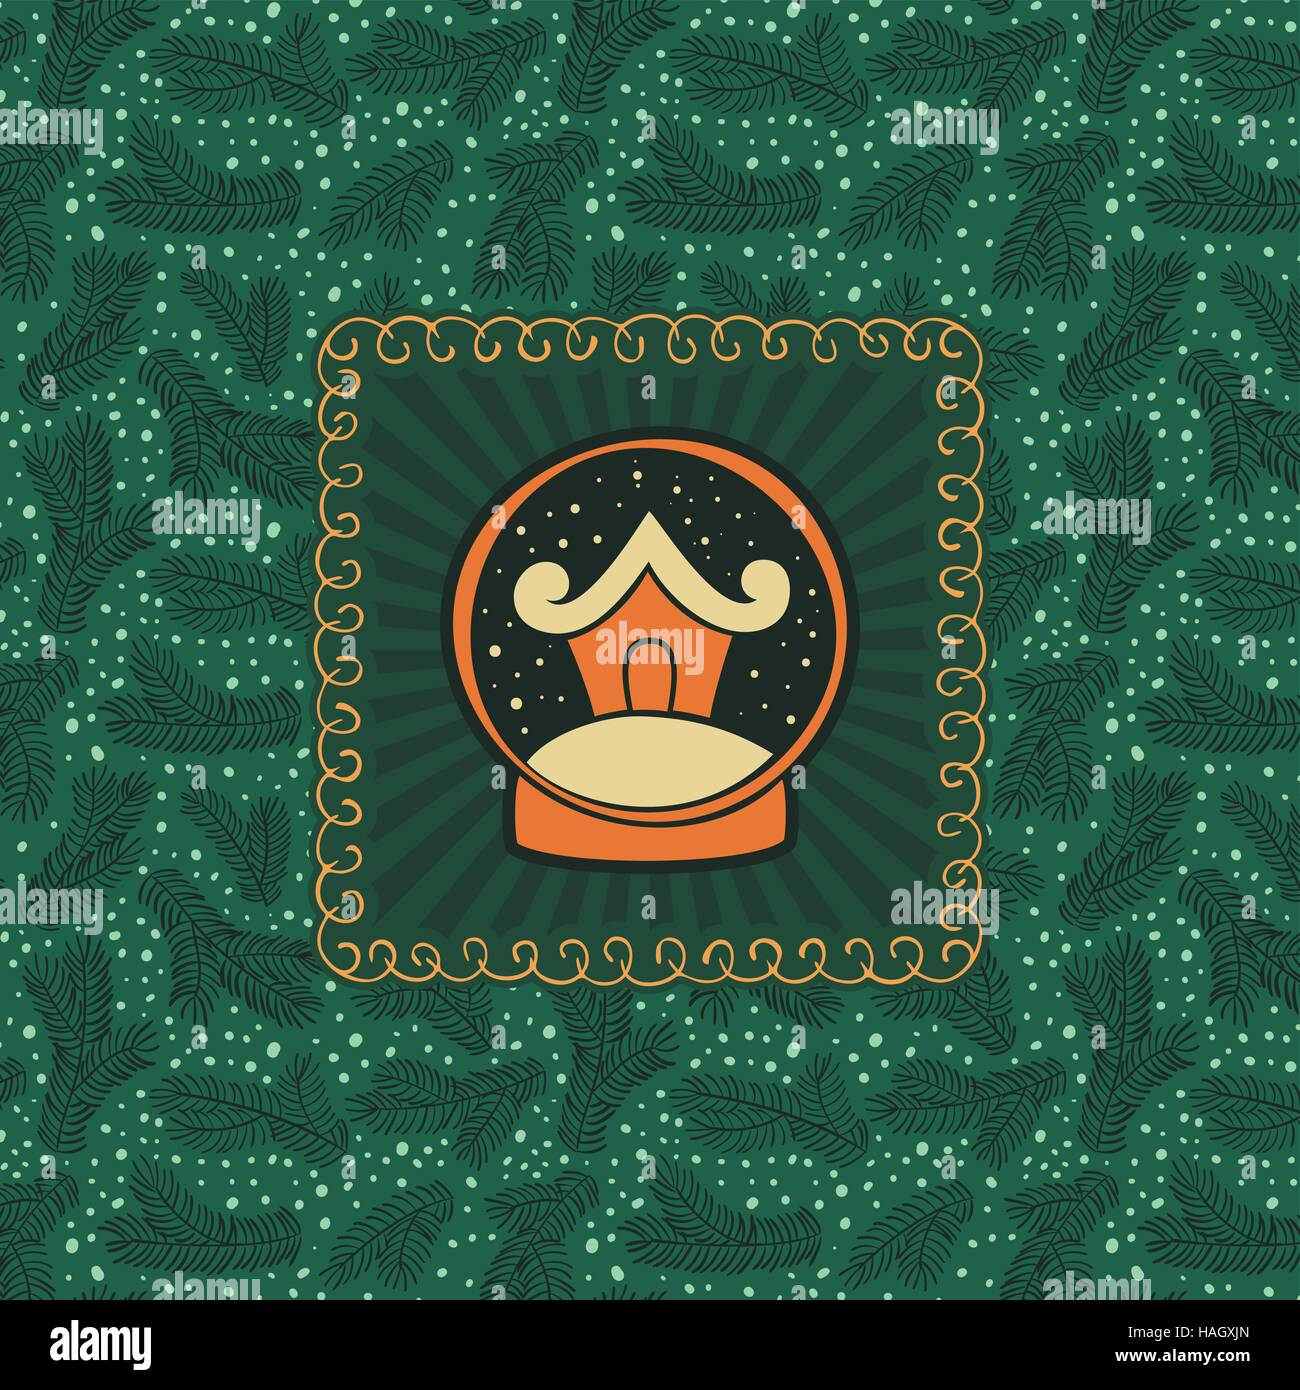 Christmas And New Year Vintage Ornate Frame With House In Snow Globe